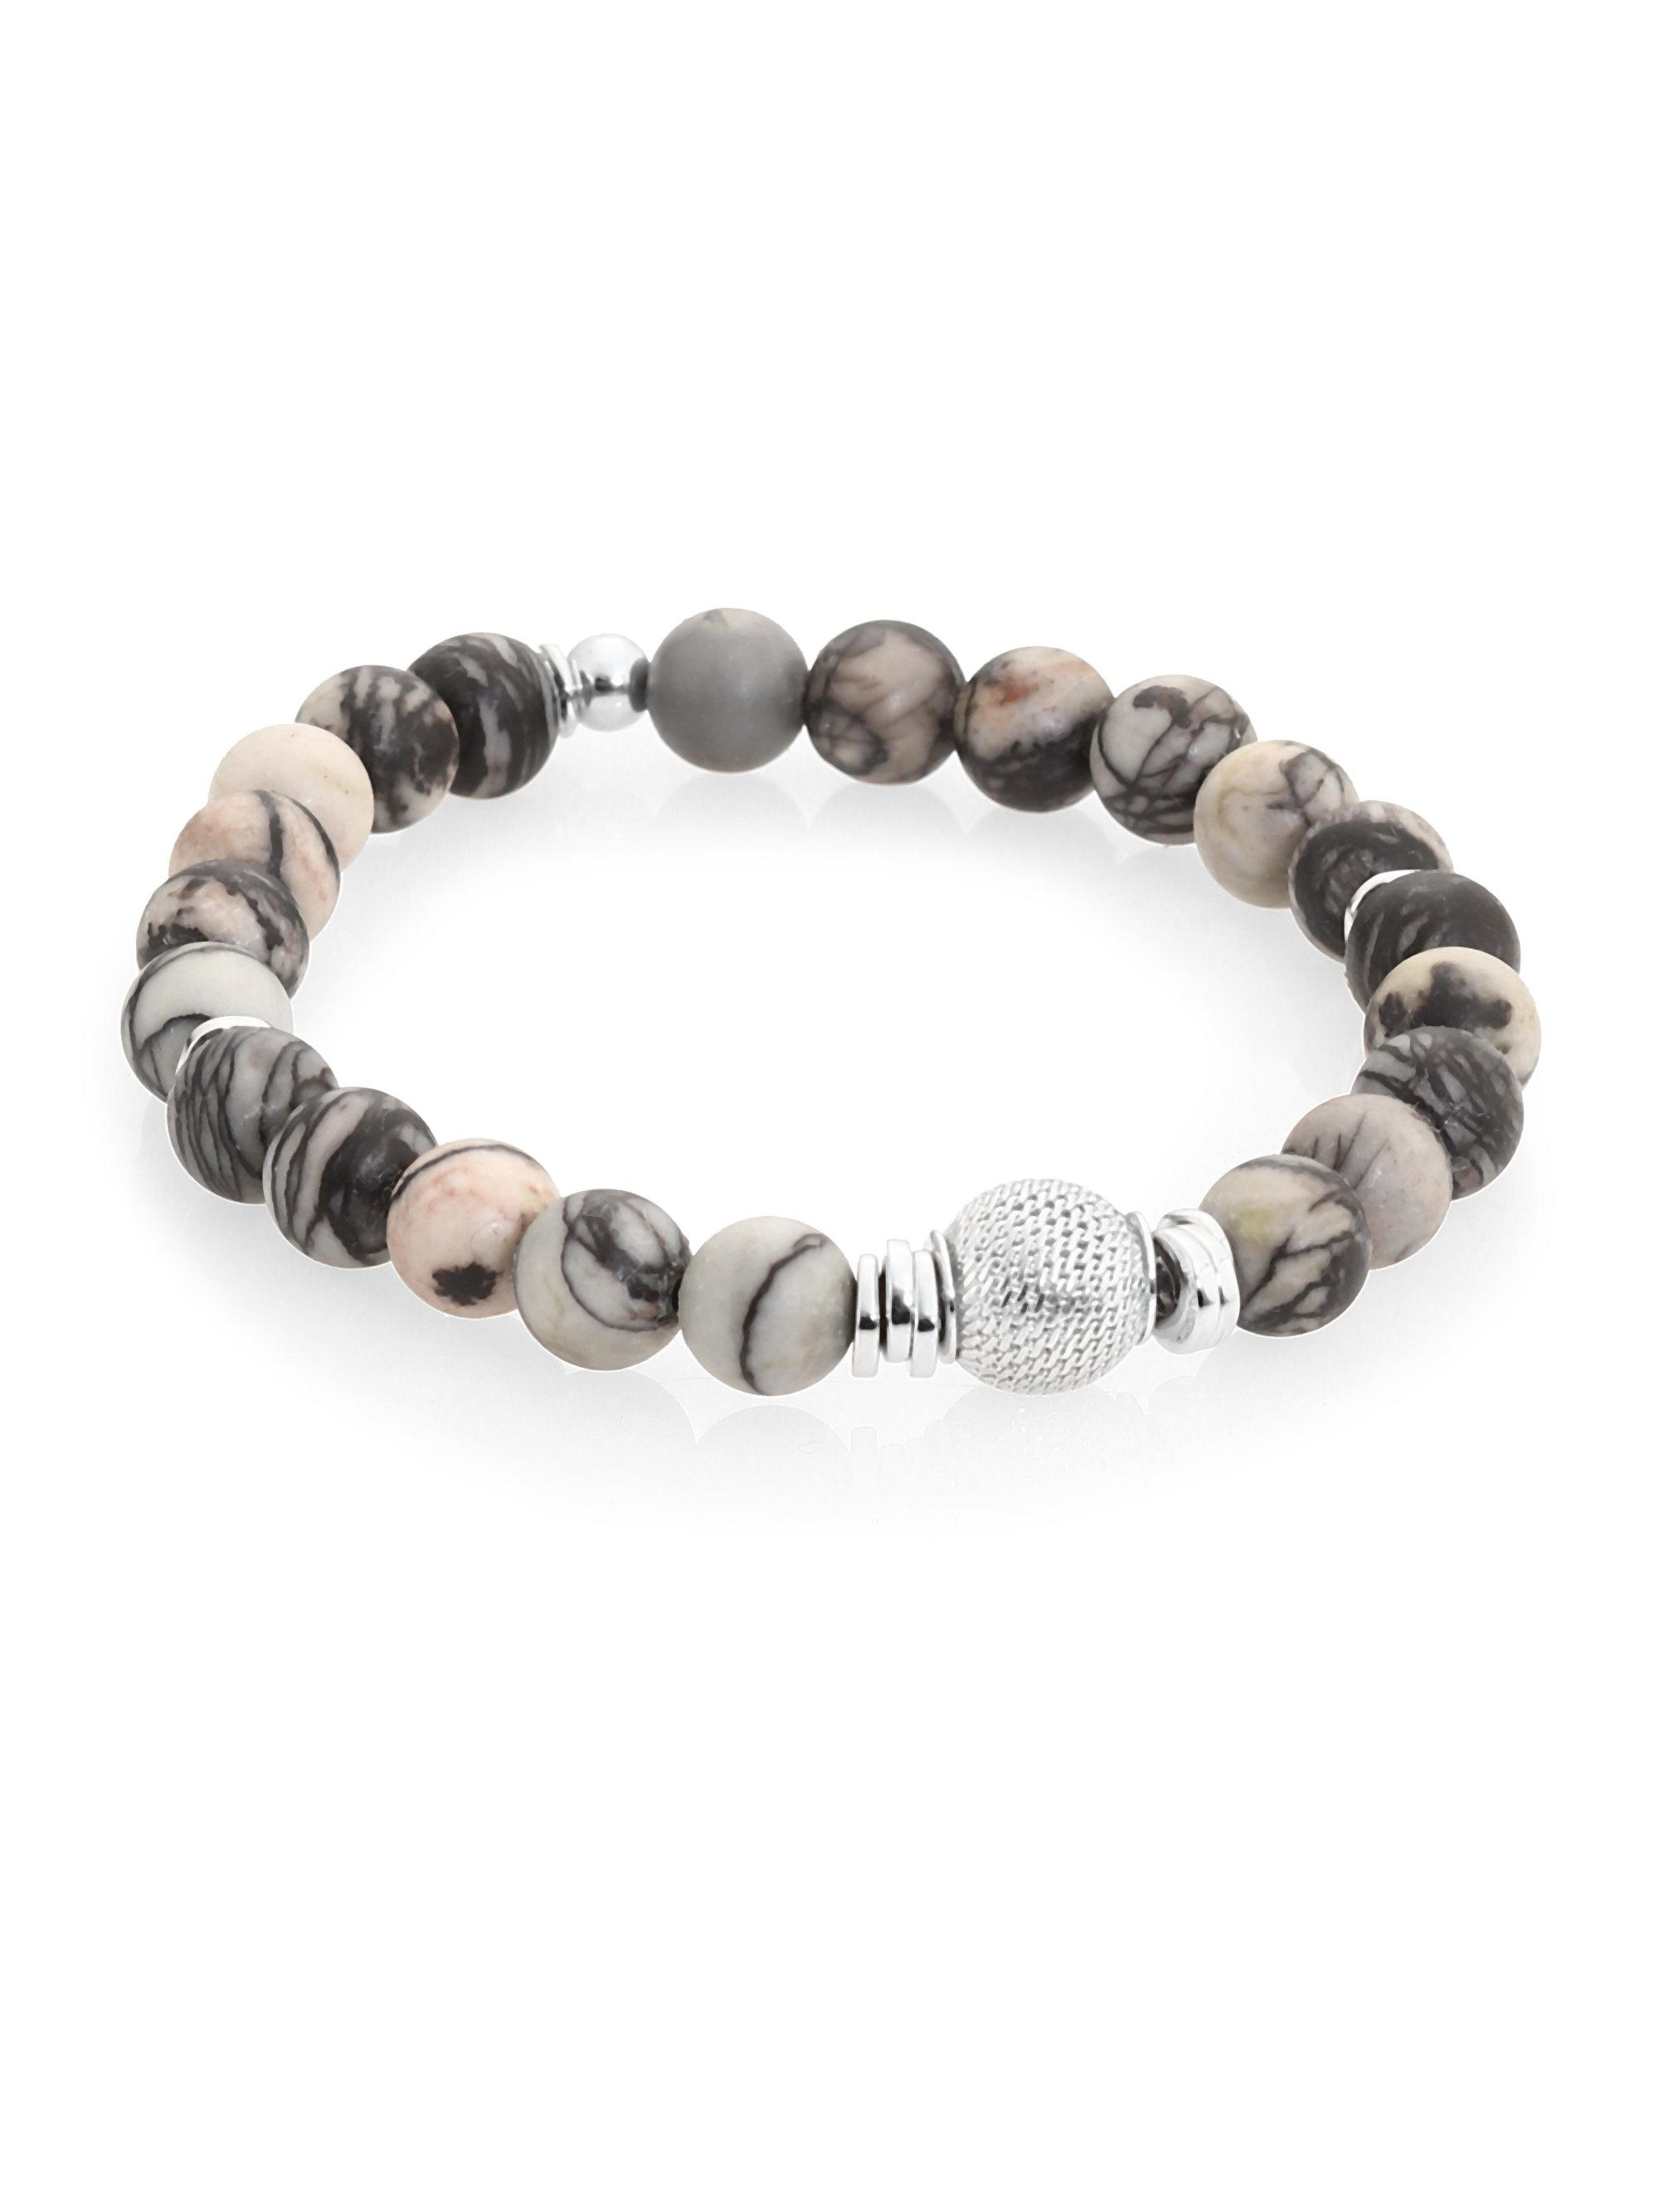 il ideas lava nz listing mens bracelet for jtxn bead gift zoom stone beaded fullxfull men